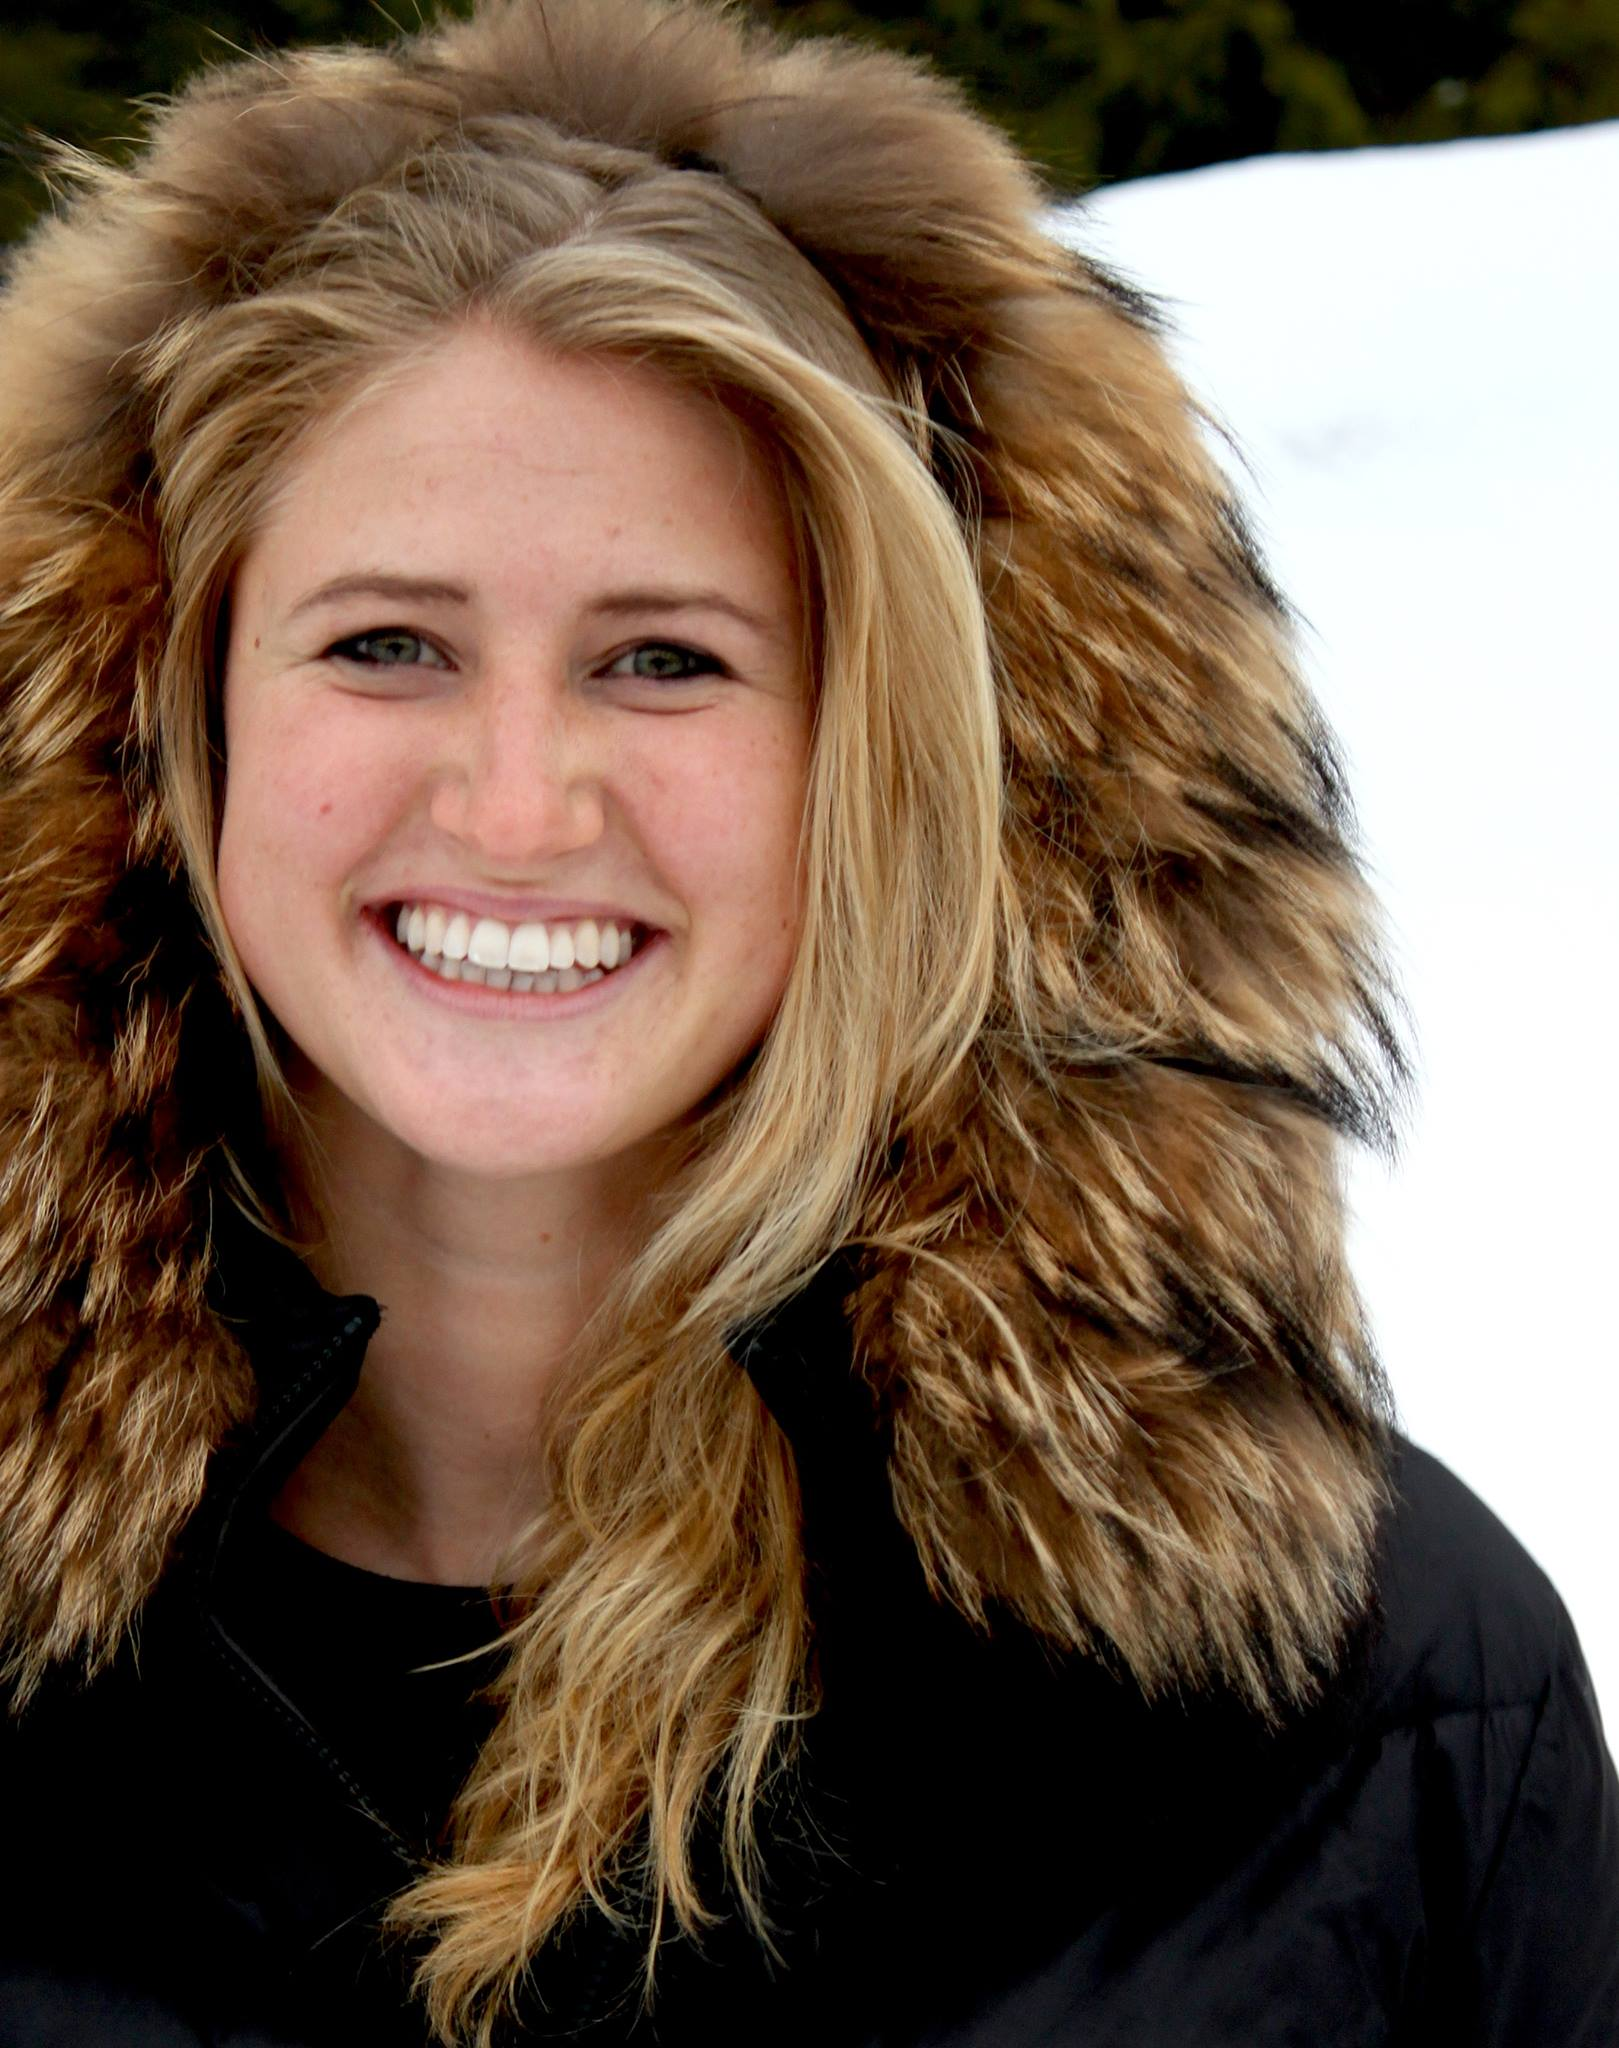 Madeleine Serenhov   Madde is an ICT Engineer with a specialization in security, currently writing her master thesis at Knowit Secure in Stockholm. Madde is an athlete and competes in high jump. While not on the track, she conquers volcanoes.   madeleine.serenhov@openhack.io